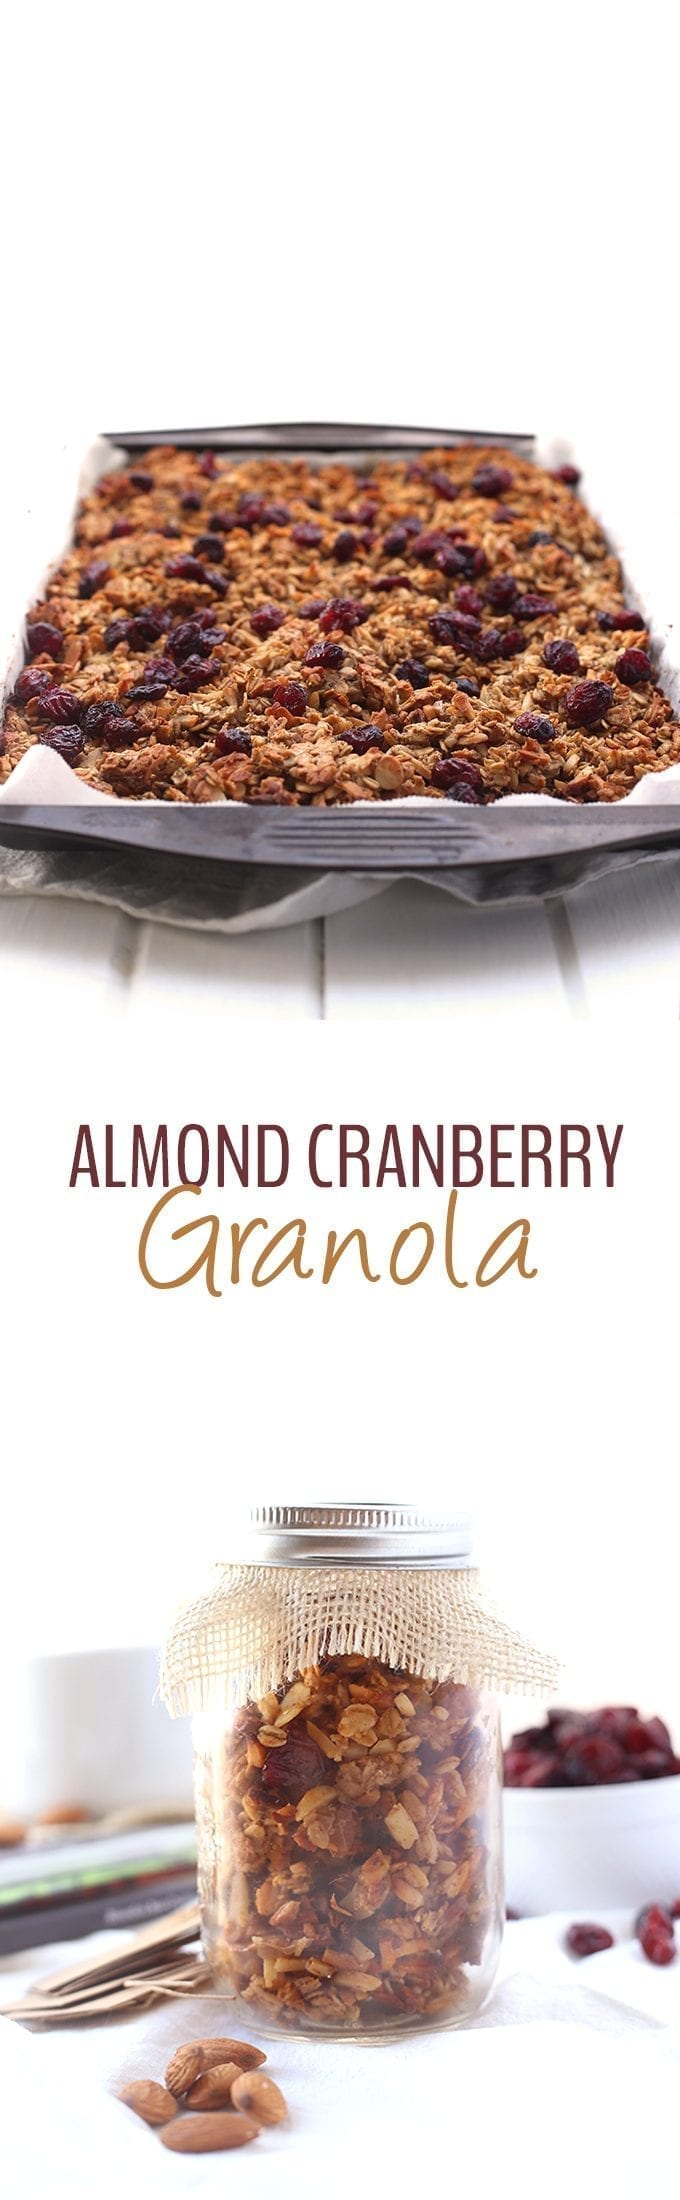 A simple and delicious recipe for Almond Cranberry Granola that will make you wonder why you've never tried this combination before! Make a big batch for yourself or store away in jars as a gift for the holidays!